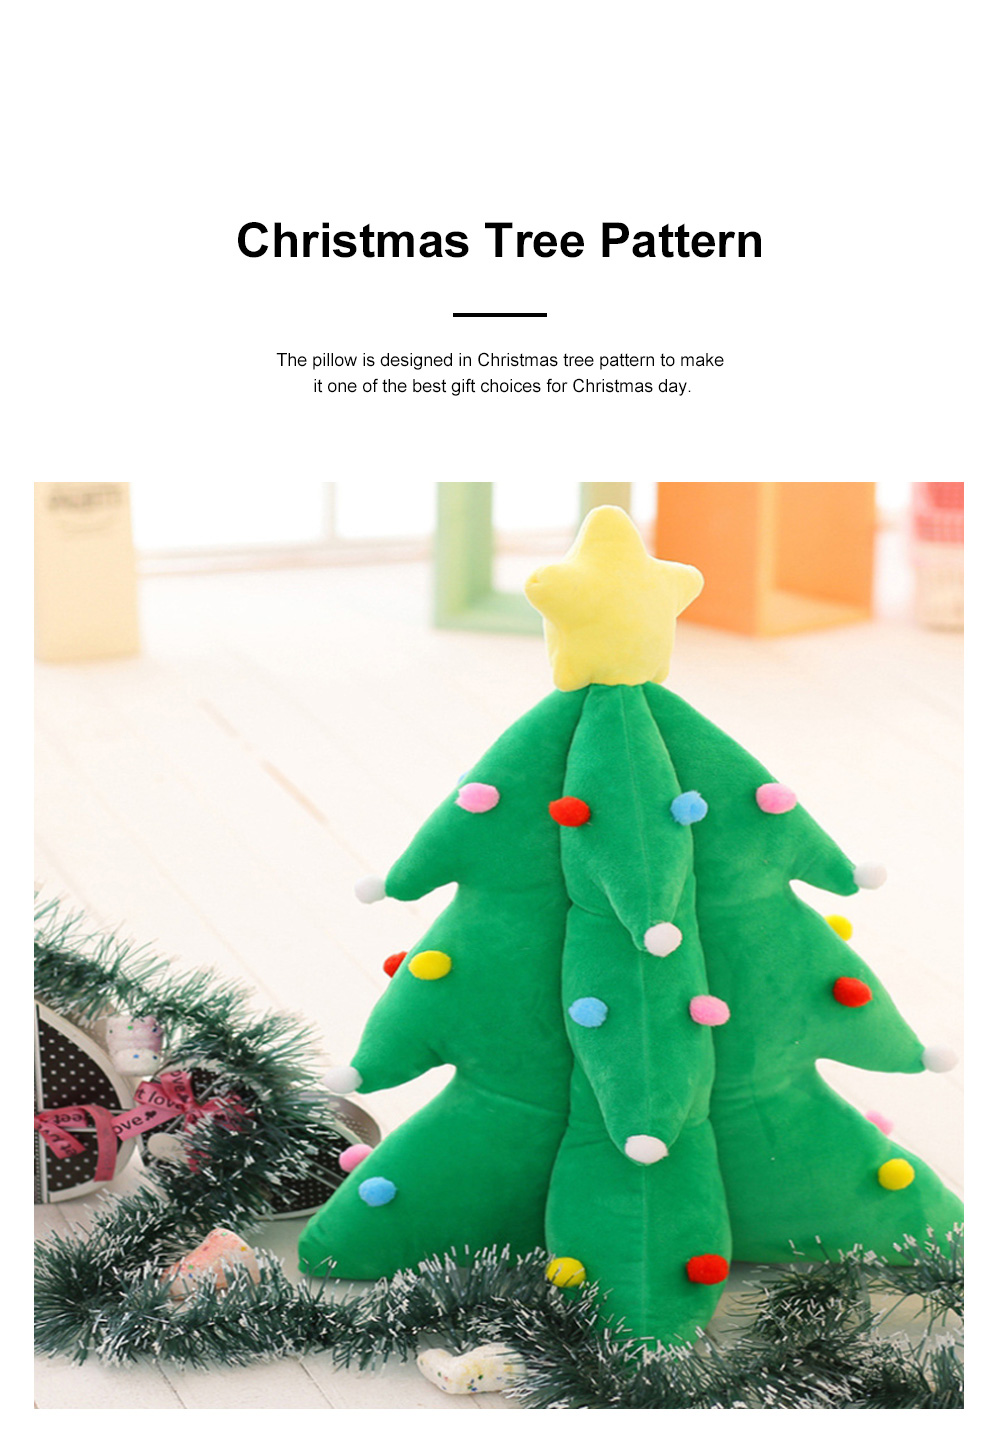 Music Christmas Tree Pillow for Gift Choice Luminous Musical Throw Pillow Stuffed Toy Environment-friendly PP Cotton Bolster 1